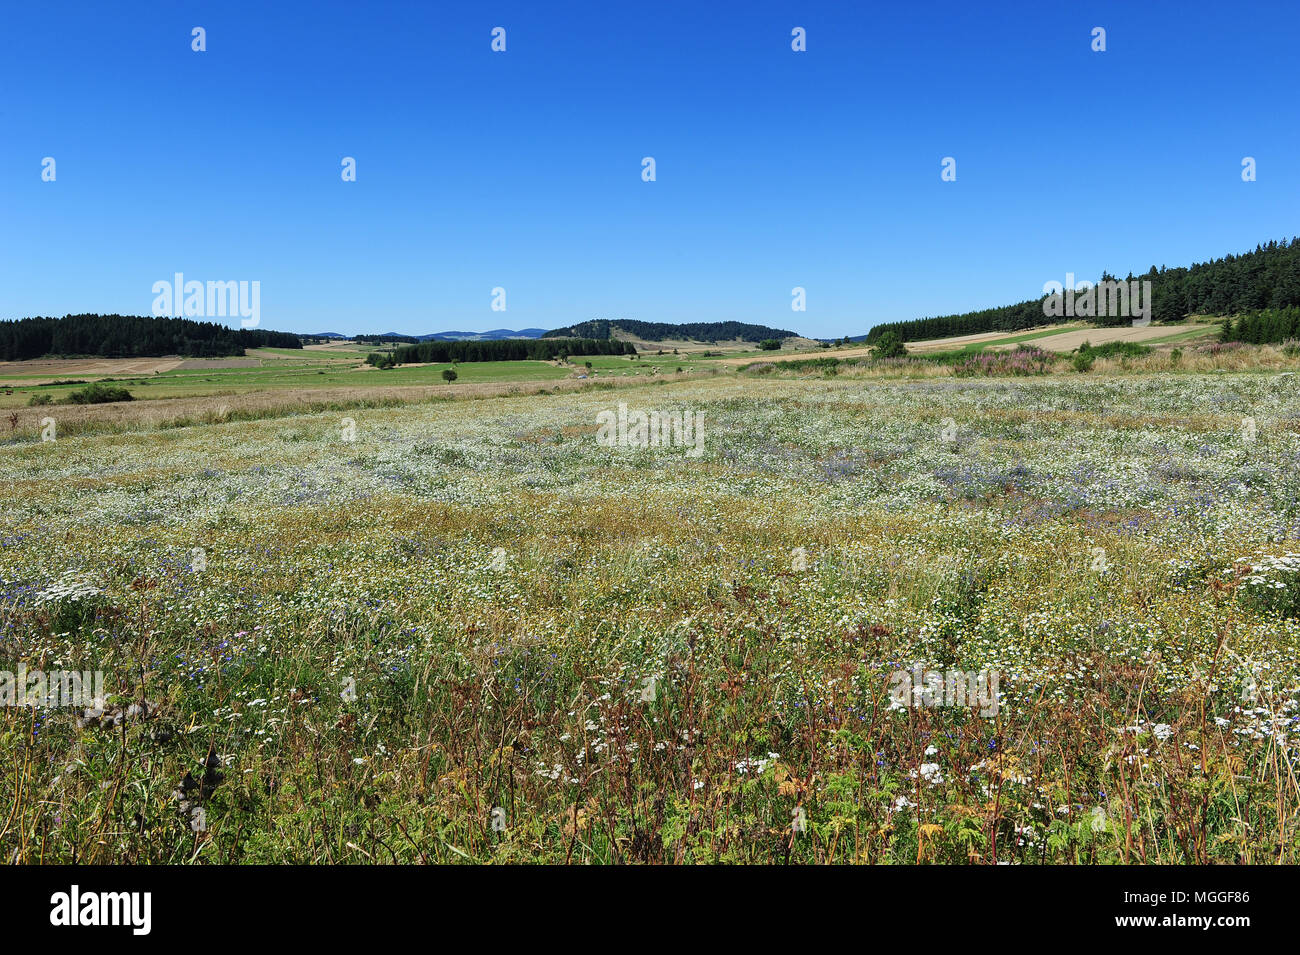 France, Haute-Loire - A soon-to-be-harvested lentil field in the French region of Le Puy. Stock Photo